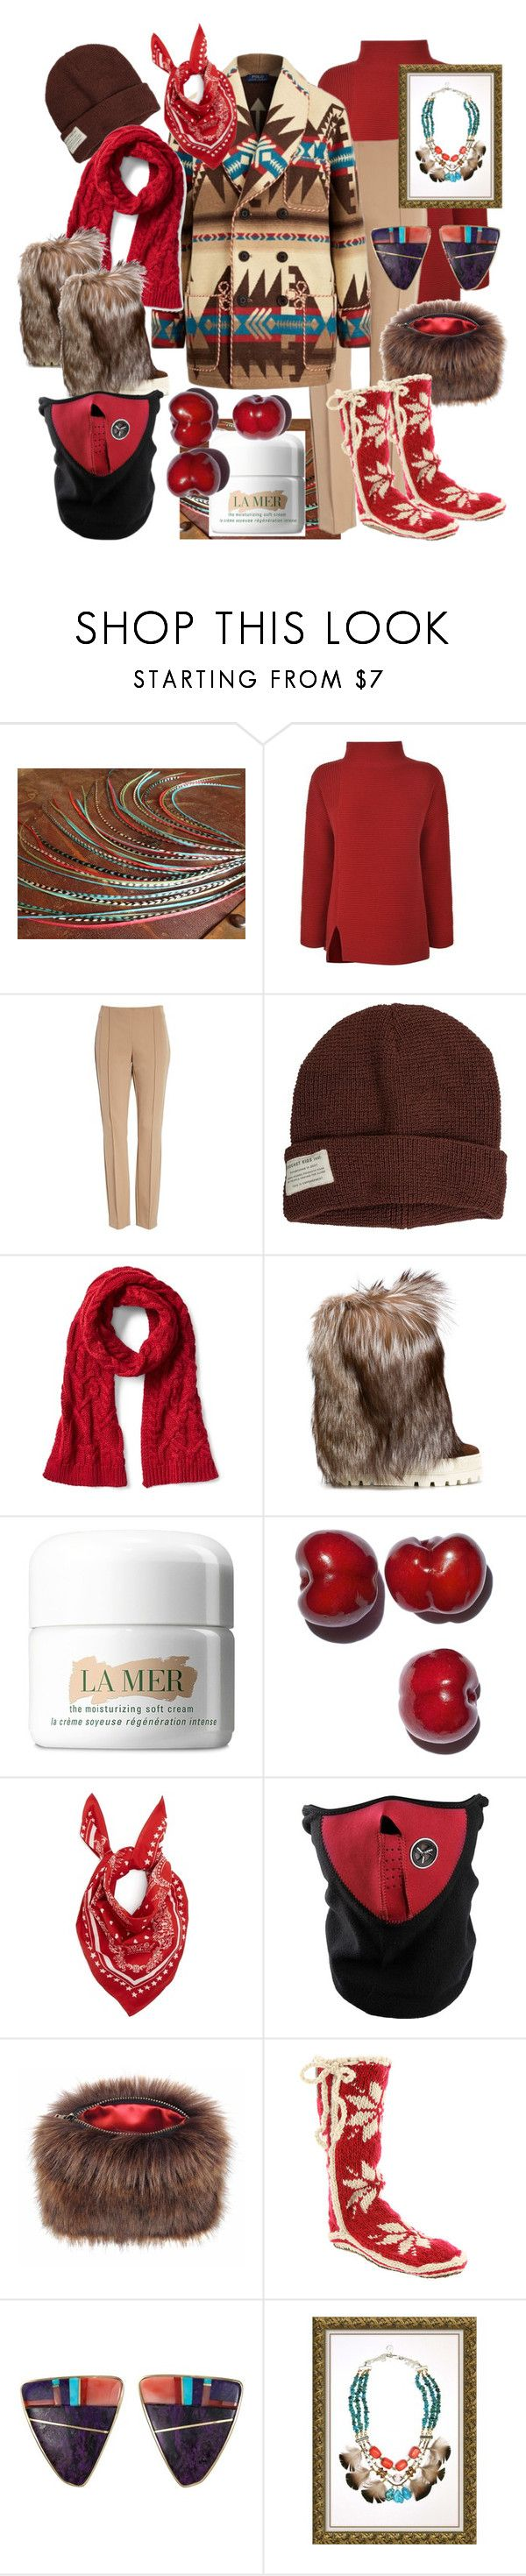 """Winter Accessories Colorado Style"" by cigoehring ❤ liked on Polyvore featuring French Connection, Lafayette 148 New York, Krochet Kids, Casadei, La Mer, Dolce&Gabbana, Helen Moore and Woolrich"